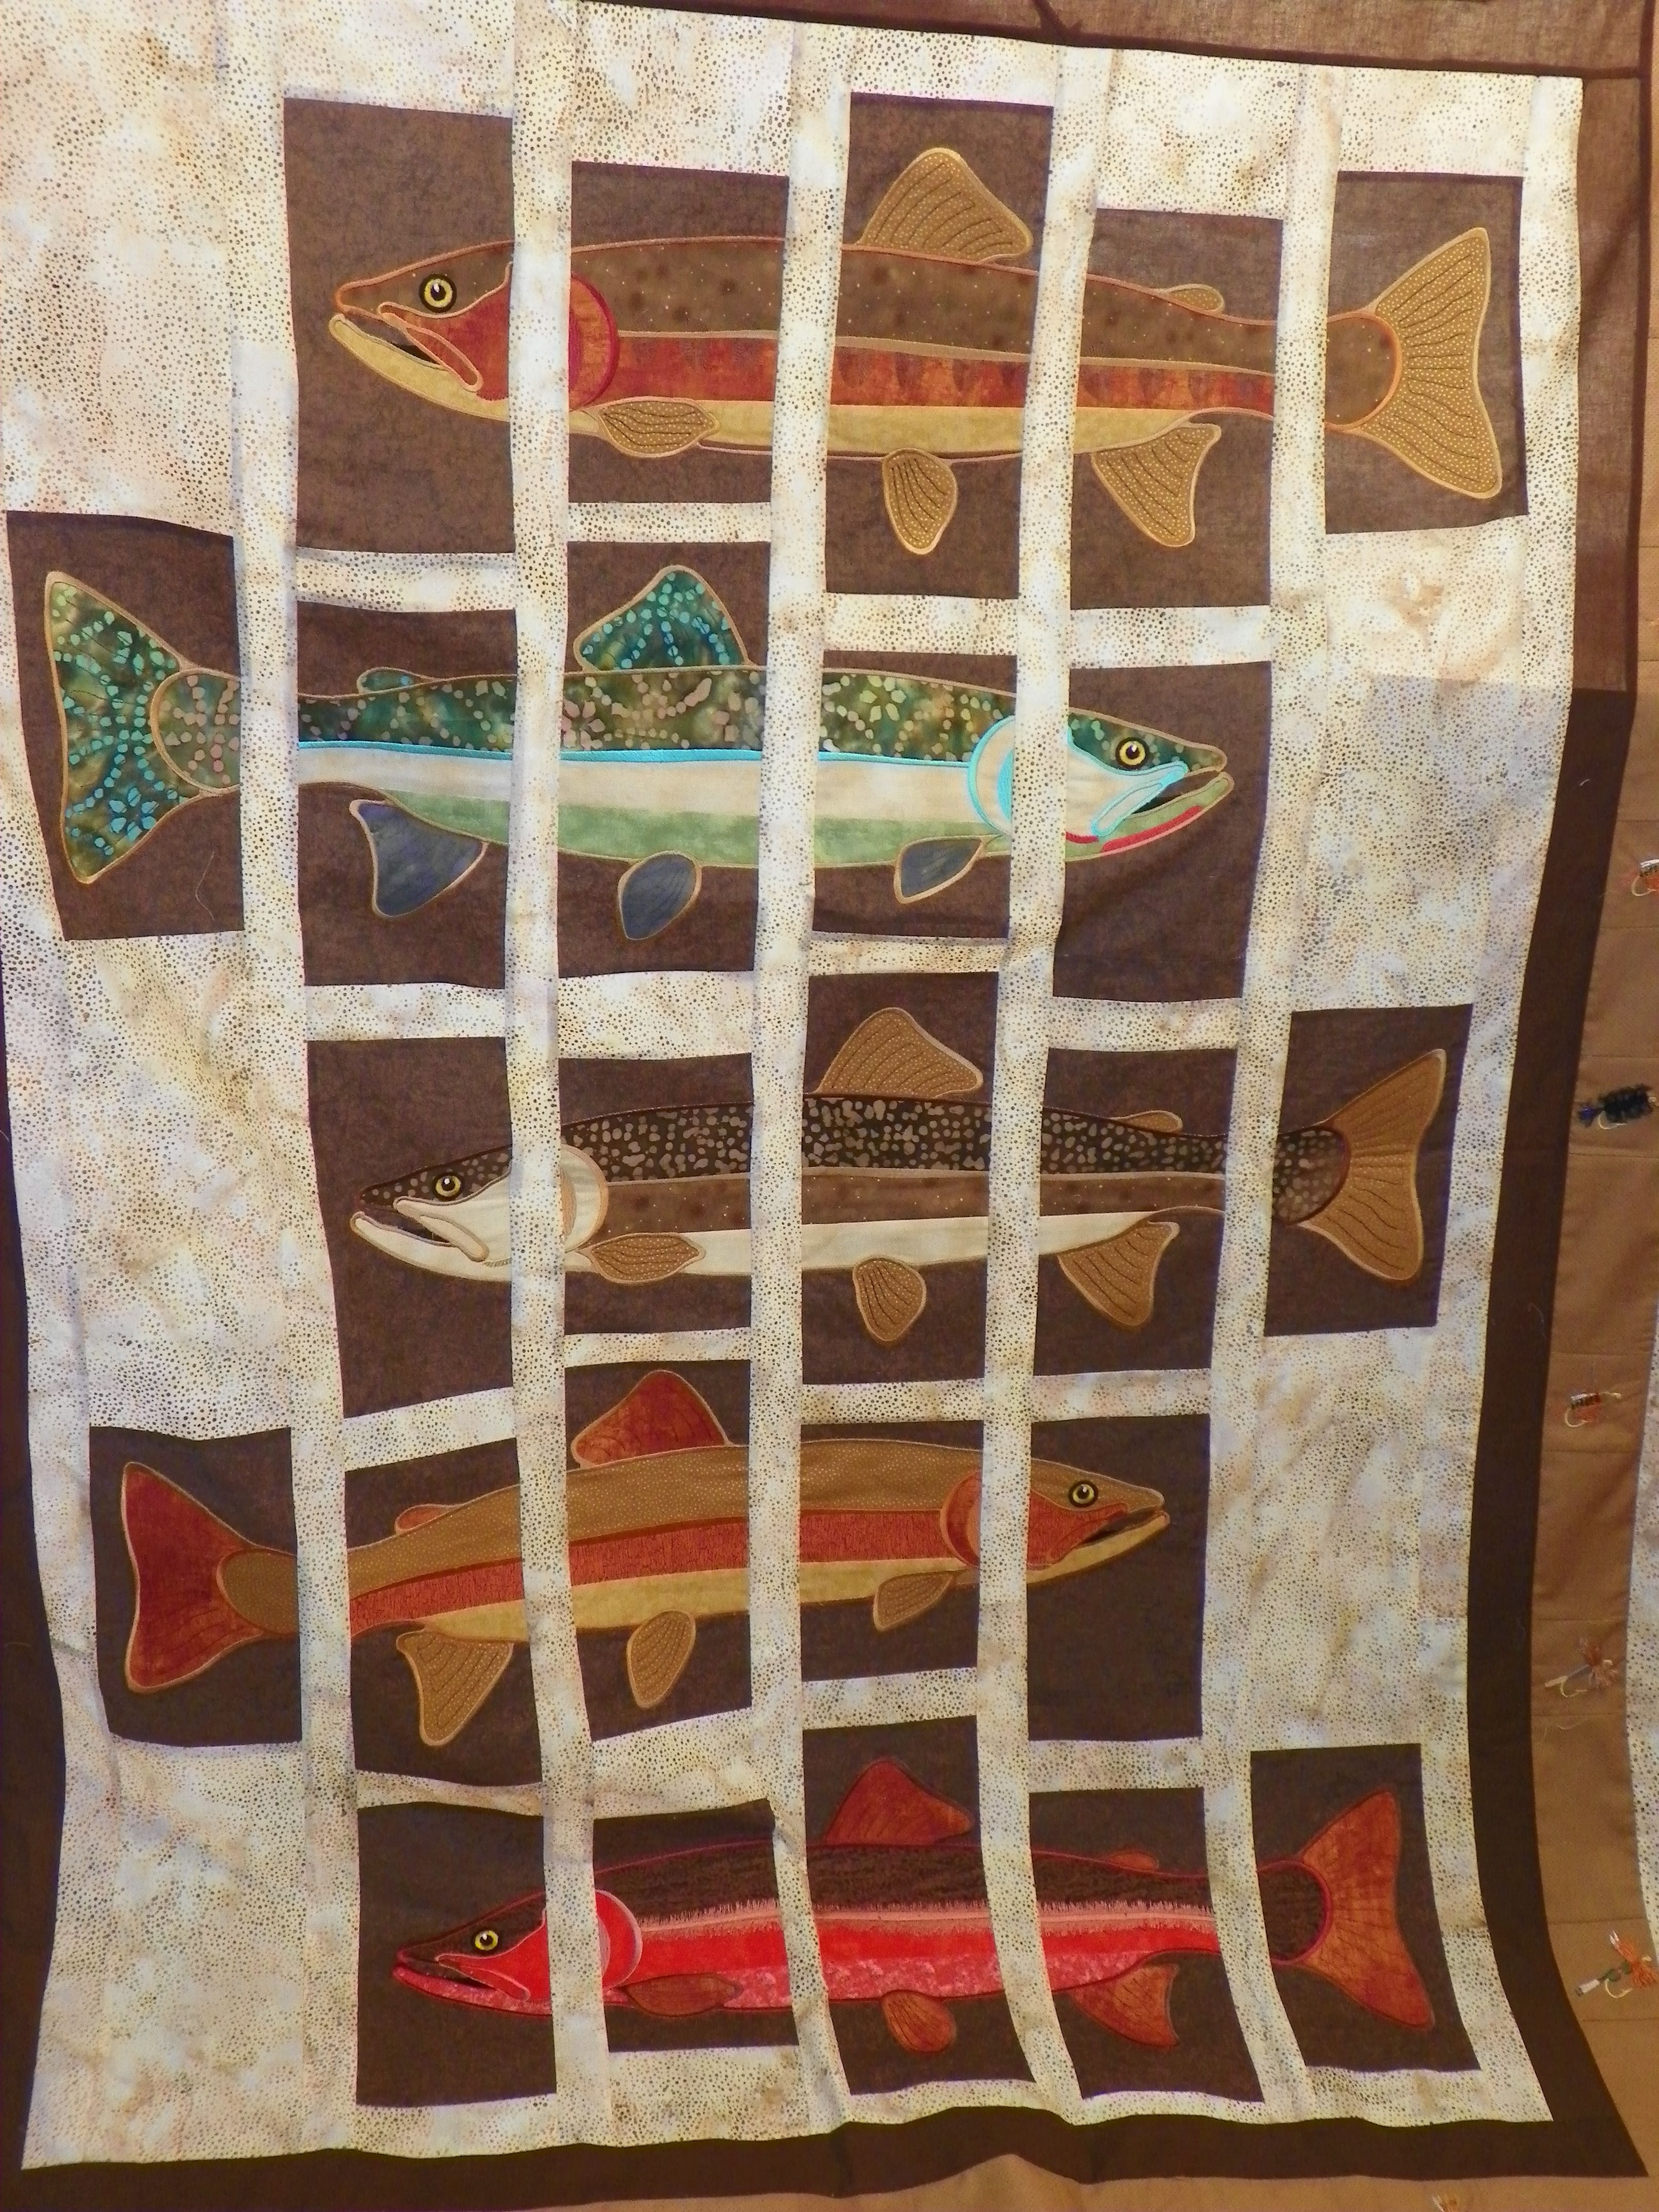 About Trout by Lunch Box Quilts | New Embroidery Designs ... : lunch box quilts - Adamdwight.com